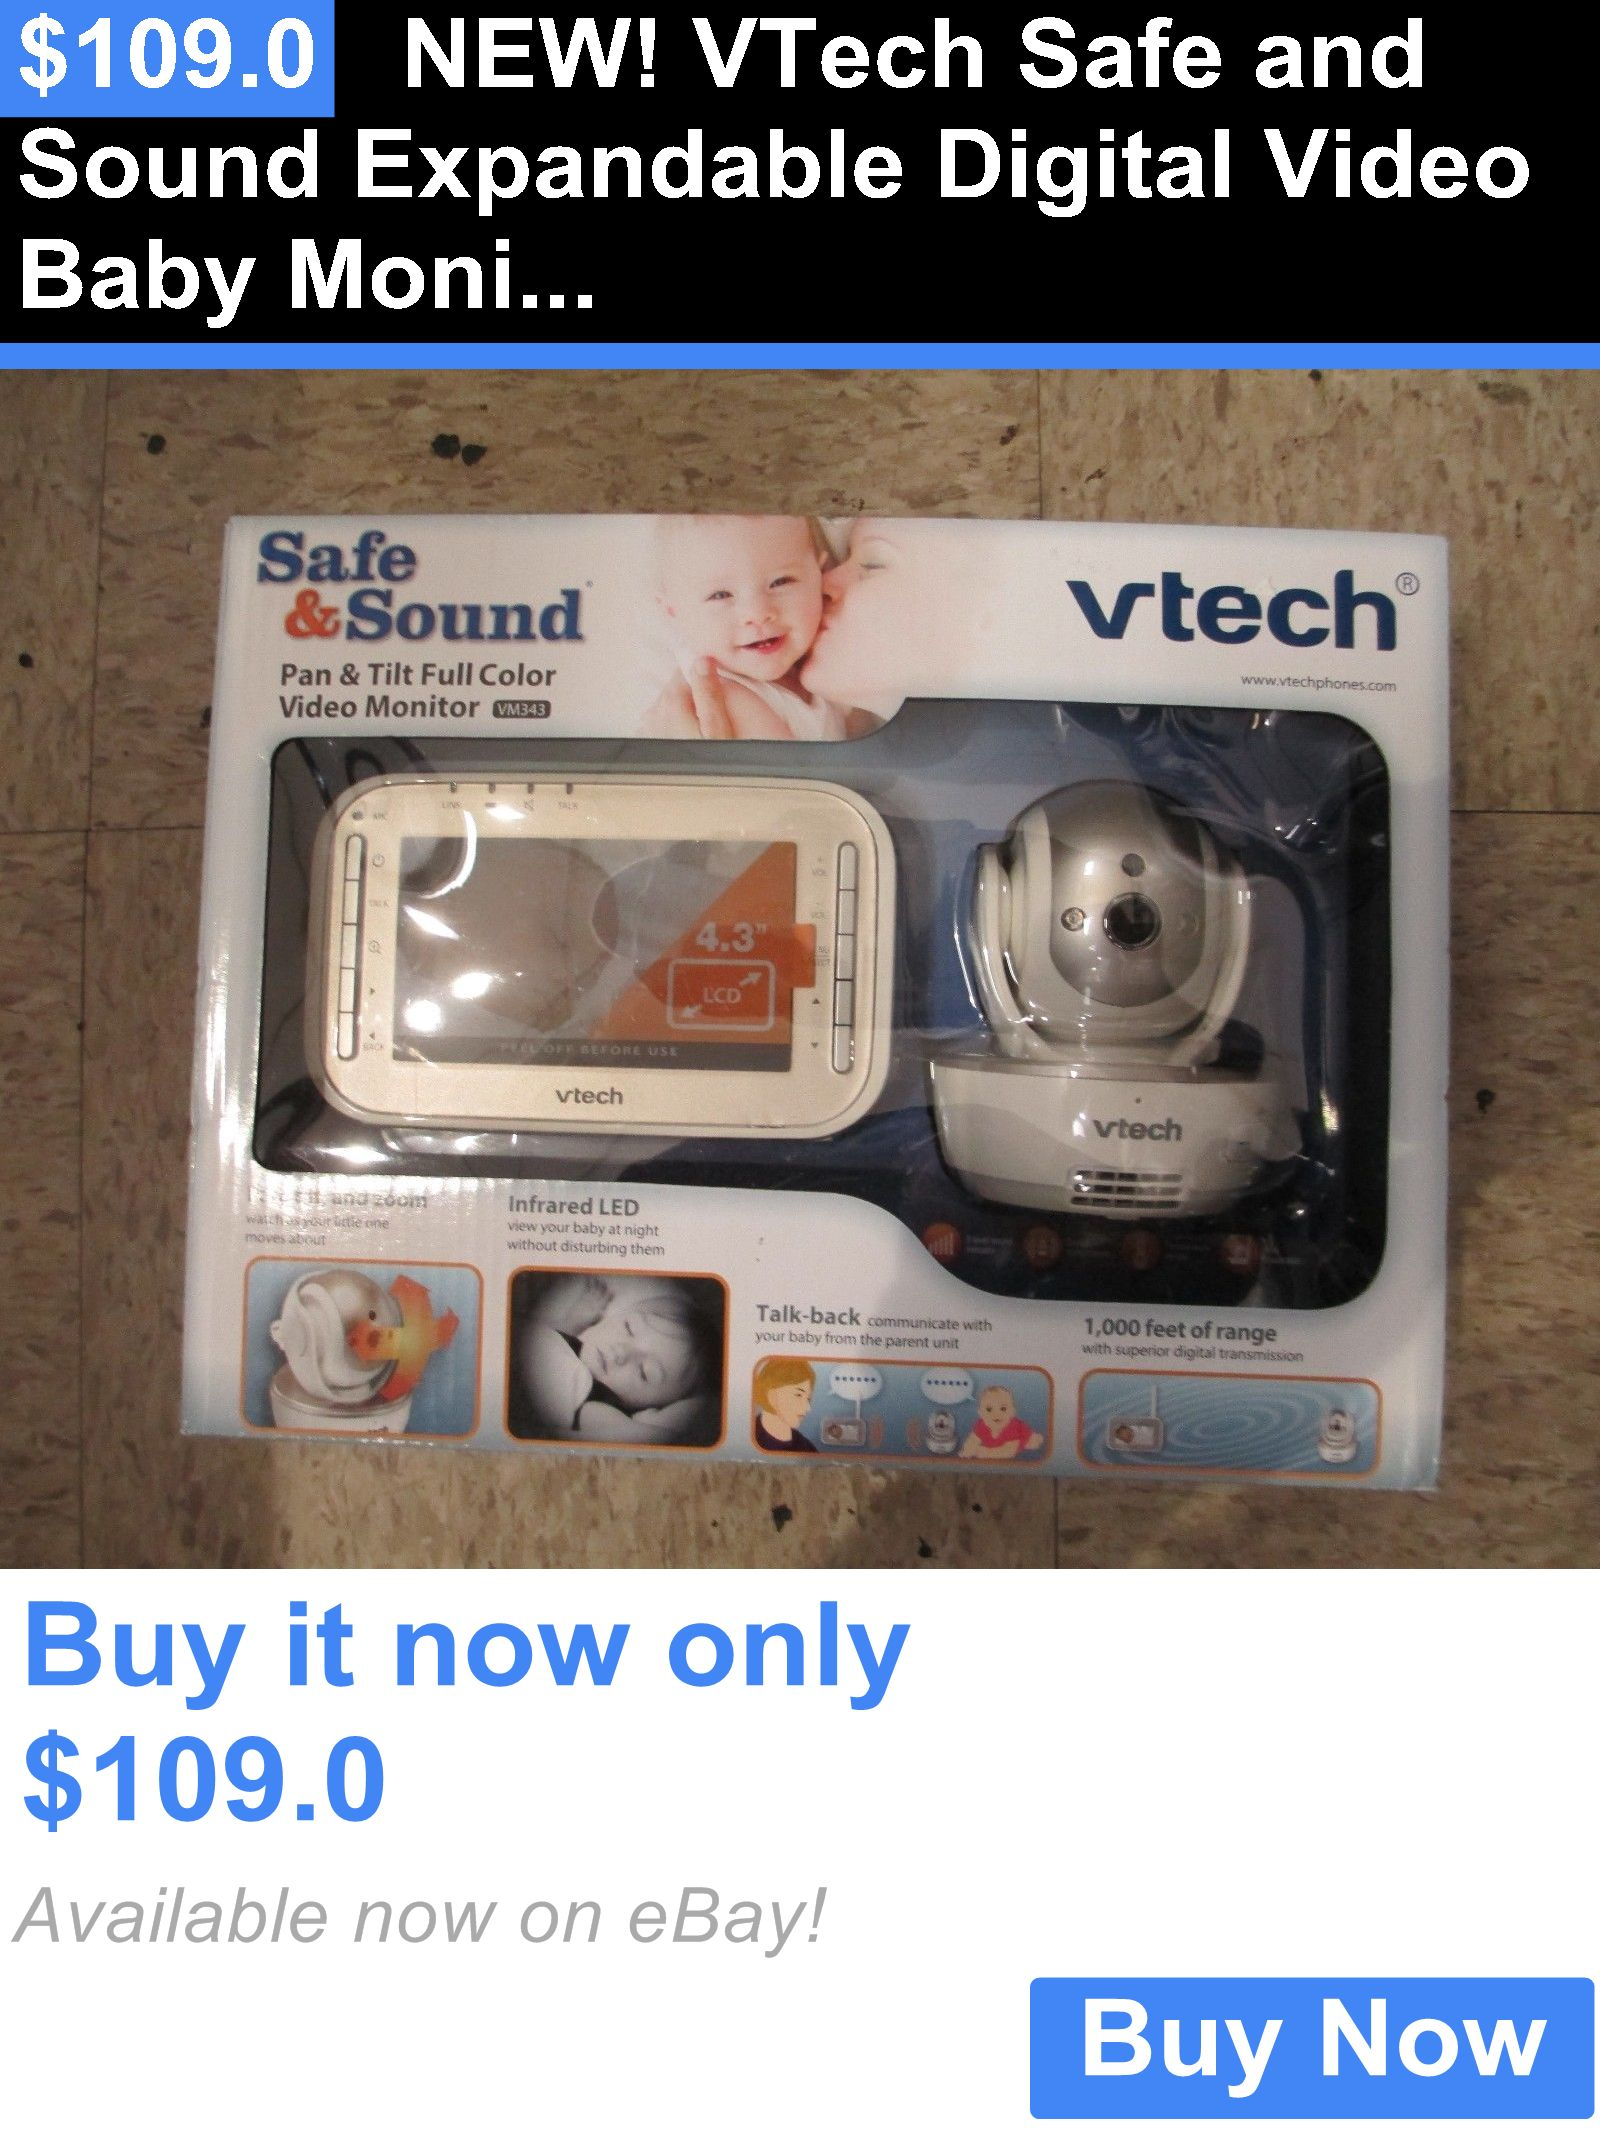 baby kid stuff: New! Vtech Safe And Sound Expandable Digital Video Baby Monitor- Vm343 BUY IT NOW ONLY: $109.0